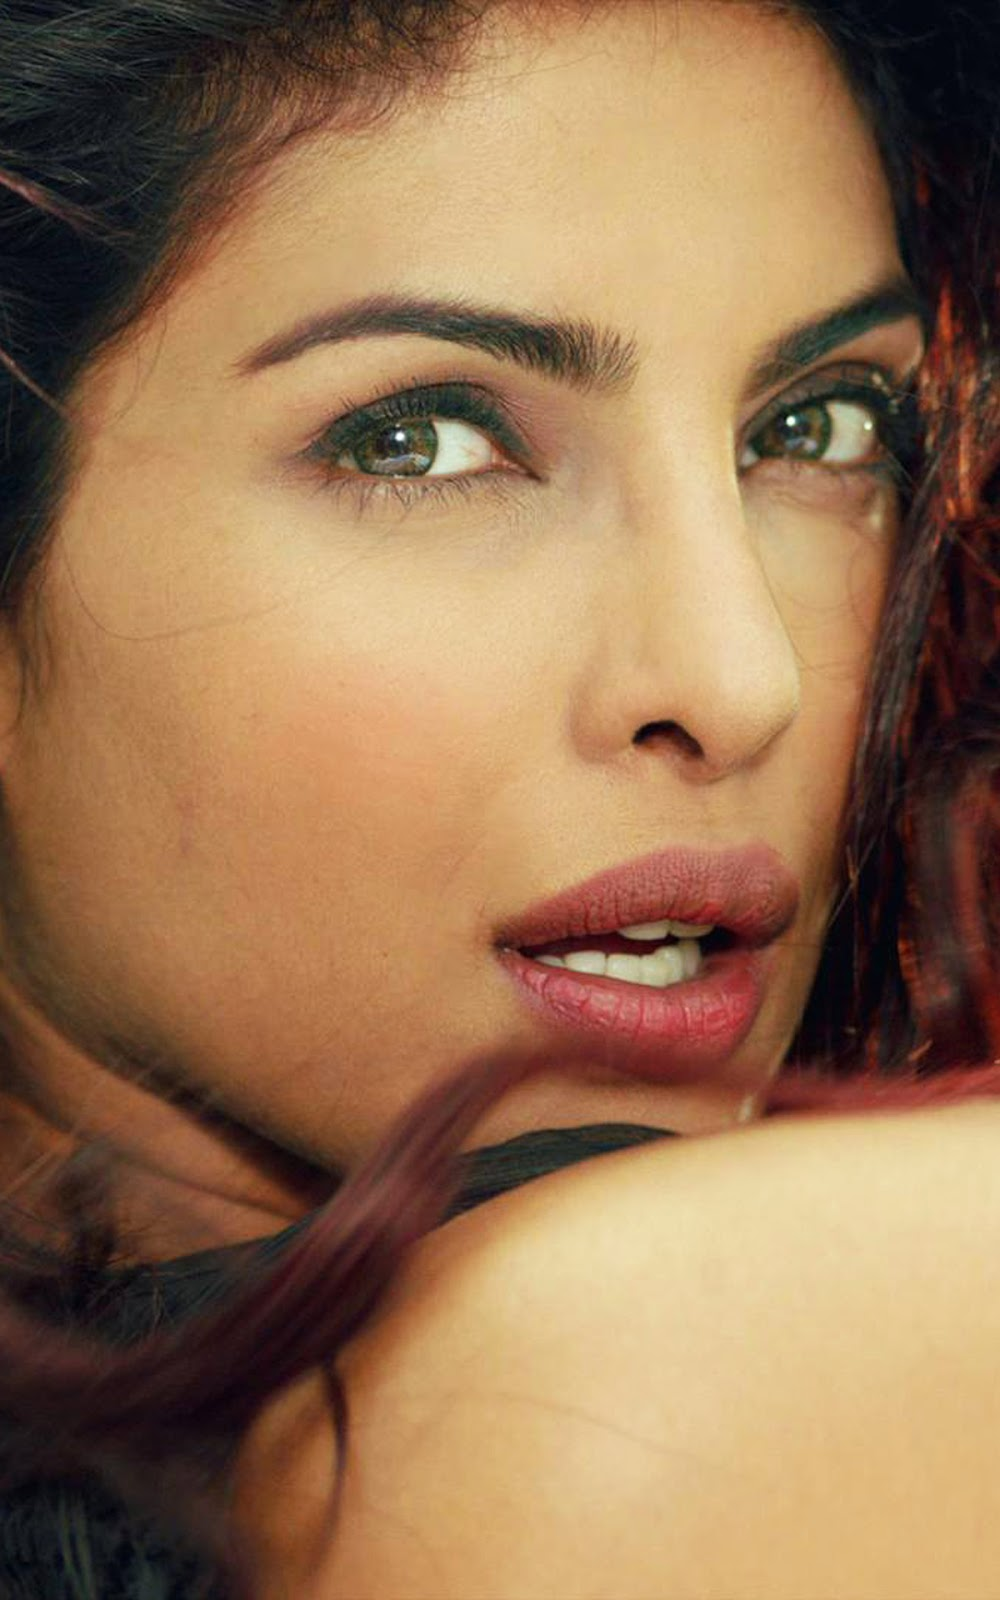 Photo Gallery of Priyanka Chopra  Priyanka Chopra one of the most popular celebrities in indian film industry. Priyanka Chopra is an indian film actress and Singer. Priyanka Chopra was born on 18th July 1982 in Jamshedpur, Jharkhand, India . His age of 33 years old as in 2015. She her father Dr. Ashok Chopra and mother Madhu Akhaurishe. Since both her parents doctor in indian army. Priyanka Chopra has one younger brother Siddharth Chopra. Indian bollywood actress Parineeti Chopra, Meera Chopra and Mannara Chopra her Cousins. Priyanka Chopra complete school studies from different school La Martiniere Girls School in Lucknow, Newton North High School in Newton, Massachusetts, John F. Kennedy High School in Cedar Rapids, Lowa and Army School in Bareilly. She her complete graduation in Jai Hind College in Mimbai. Priyanka Chopra started career in modeling and win the Miss Worls in 2000. Priyanka Chopra after enter in the bollywood cinema and she made her first bollywood hindi flms Humraaz in 2002. Priyanka Chopra made her next bollywood debut films in 2003 The Hero: Love Story of a Spy with opposite Sunnydeol and Preity Zinta. Later make highest success box-office films Andaaz with Akshay Kumar in 2003. She her brilliant performance in the films and won the Filmfare Award for Best Female Debut. Priyanka Chopra work in 2004 years three movies Plan, Kismat and Asmbhav and the films box-office is poorly. Priyanka Chopra after work in many popular and highest grossing films 36 China Town in 2006, Krrish in 2006, Don in 2006 with opposite Shahrukh Khan, Big Brother in 2007, Fashion in 2008, Ra.One in 2011, Don 2 in 2011, Barfi! in 2012 with opposite Ranbir Kapoor, Shootout at Wadala in 2013. Priyanka Chopra is a singer and made in three english song In My City in 2012, Exotic with Pitbull in 2013 and recently song I Can't Make You Love Me. Priyanka Chopra Currently Work in Hollywood English TV Series Quantico and she her upcoming bollywood movies Bajirao Mastani With Opposite Ranveer Singh.  Priyanka Chopra is beautiful and charming actress in bollywood. Priyanka Chopra work in bollywood highest grossing action films Krrish 3 in 2013. Priyanka Chopra did item girls dancing role in Goliyon Ki Raasleela Ram-Leela in 2013. Priyanka Chopra recently work in indian biographical sports films Mary Kom in 2014. Priyanka Chopra upcoming movies Dil Dhadakne Do with opposite Ranveer Singh, Bajirao Mastani with Ranveer Singh, Rock On!! 2 with Arjun Rampal. Priyanka Chopra height is 5 feet 6 inch approx to 169 cm and weight is 53 kg which around to 117 lbs/pound. Priyanka Chopra hair color is dark brown and eye color is dark brown .   priyanka chopra hot, priyanka chopra photos, priyanka chopra pics, priyanka chopra song, priyanka chopra images,